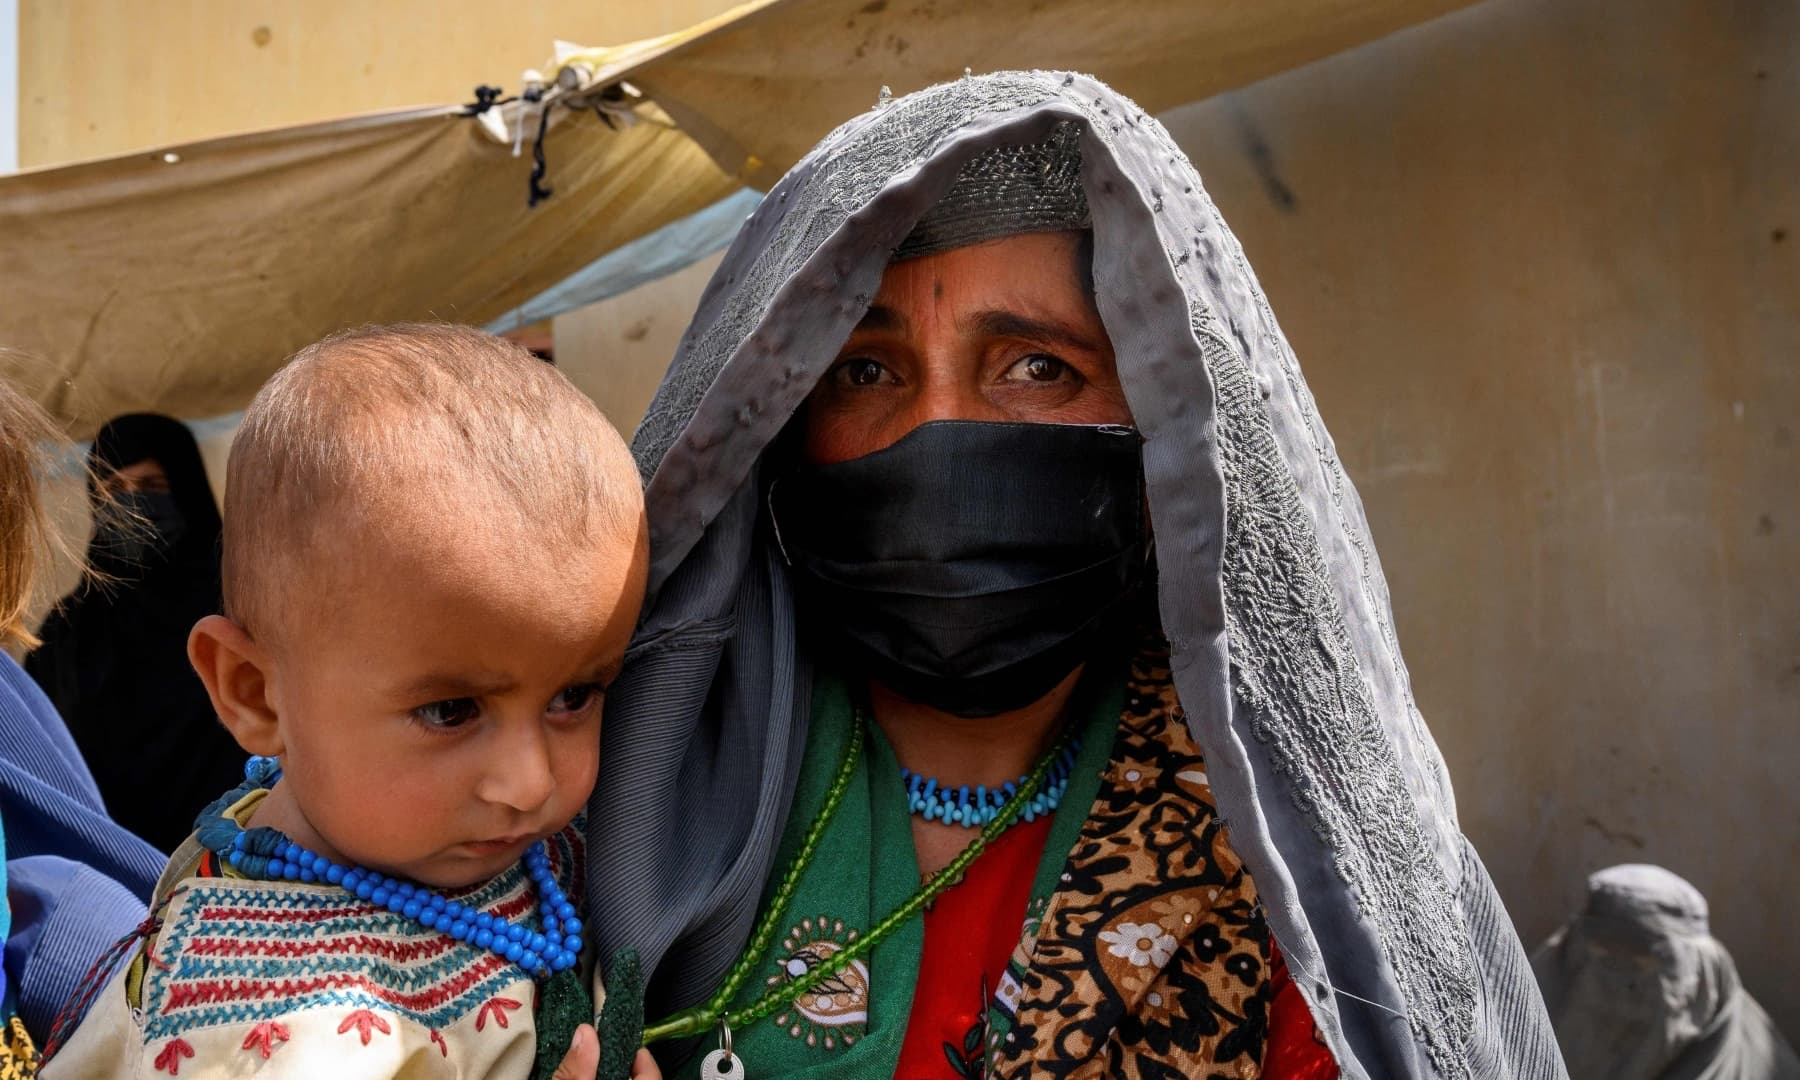 Farzana, who fled her village in Helmand province when it was taken over by the Taliban, waits to see a doctor at a mobile clinic for women and children set up at the residence of a local elder in Yarmuhamad village, near Lashkar Gah in Helmand province, Afghanistan, March 28, 2021. — AFP/File